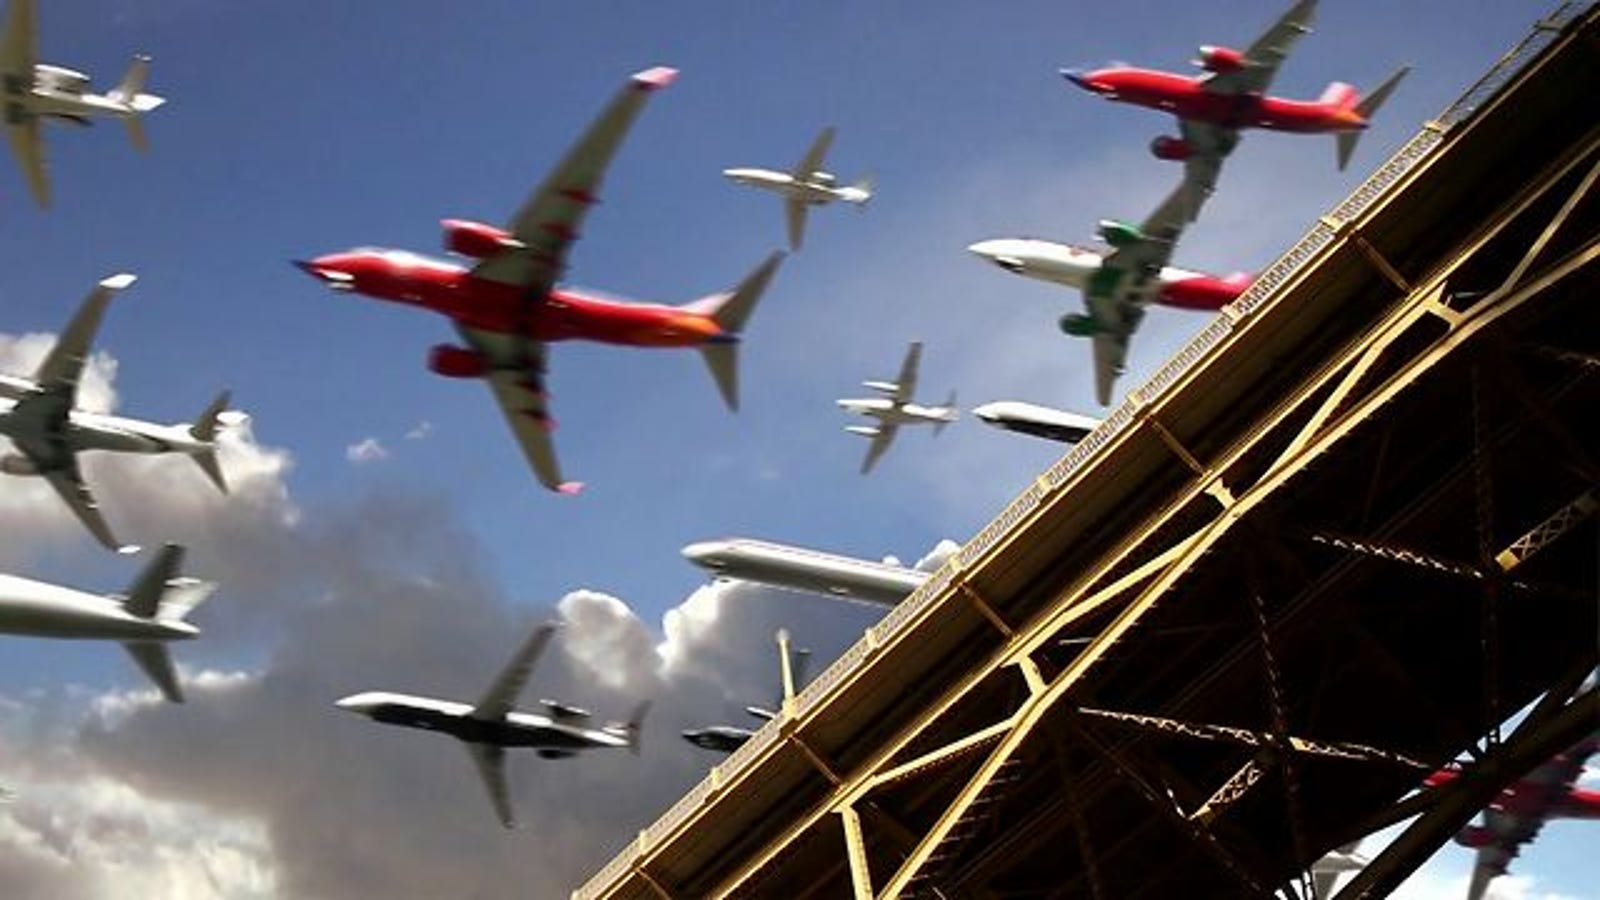 Watch Five Hours of Commercial Jet Flyovers Timelapsed Down Into Thirty Crowded Seconds